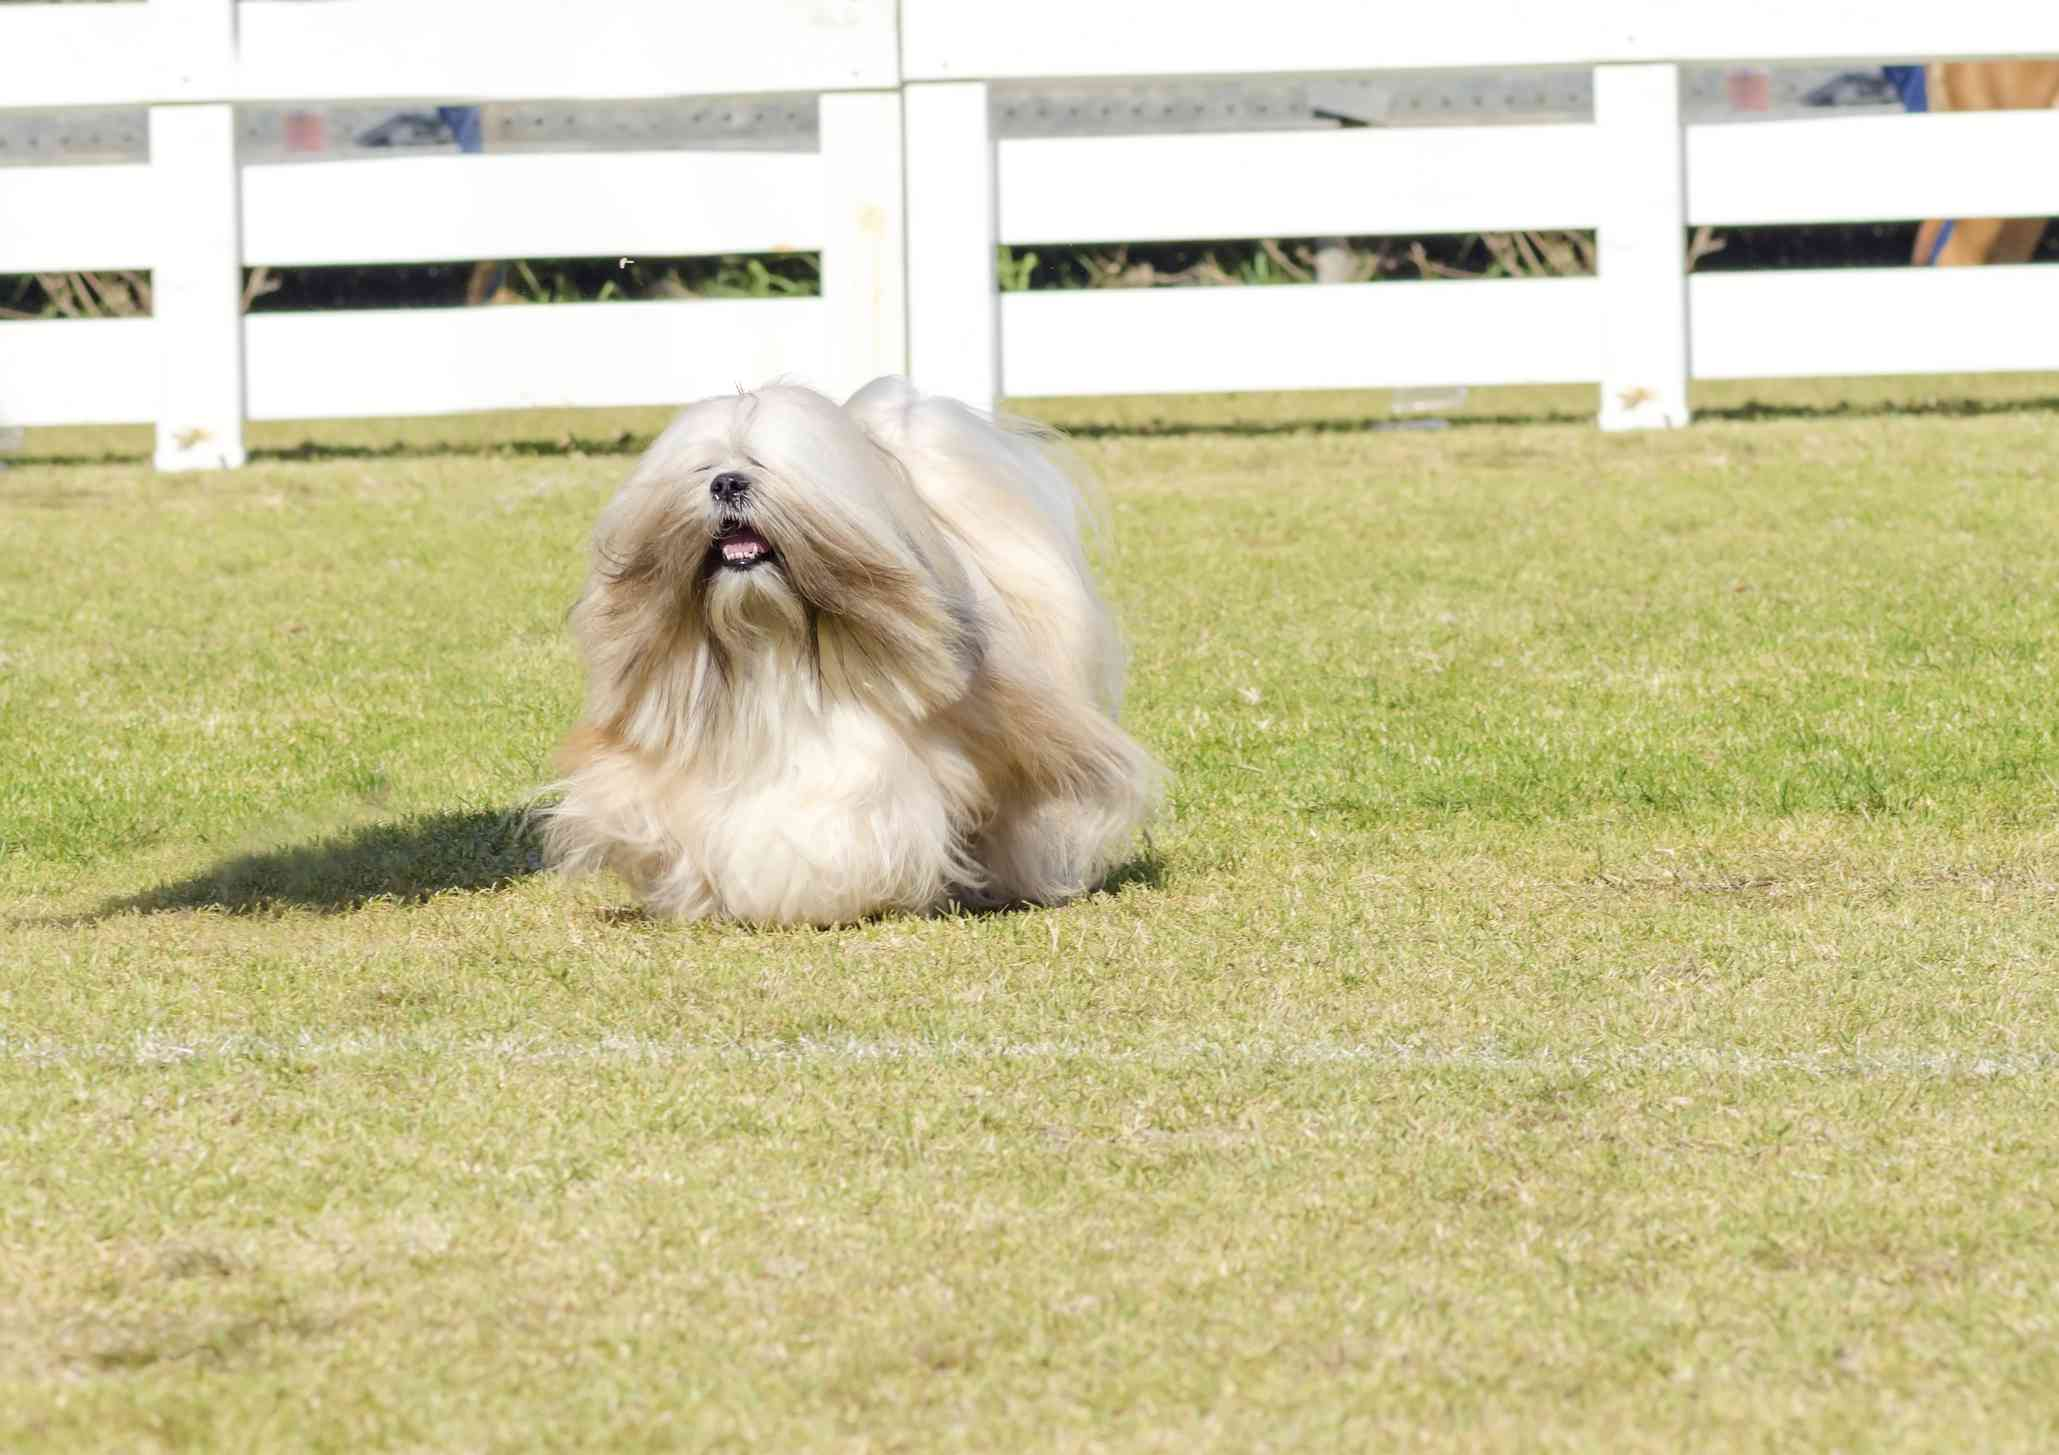 Tibetan Terrier being shown in the ring